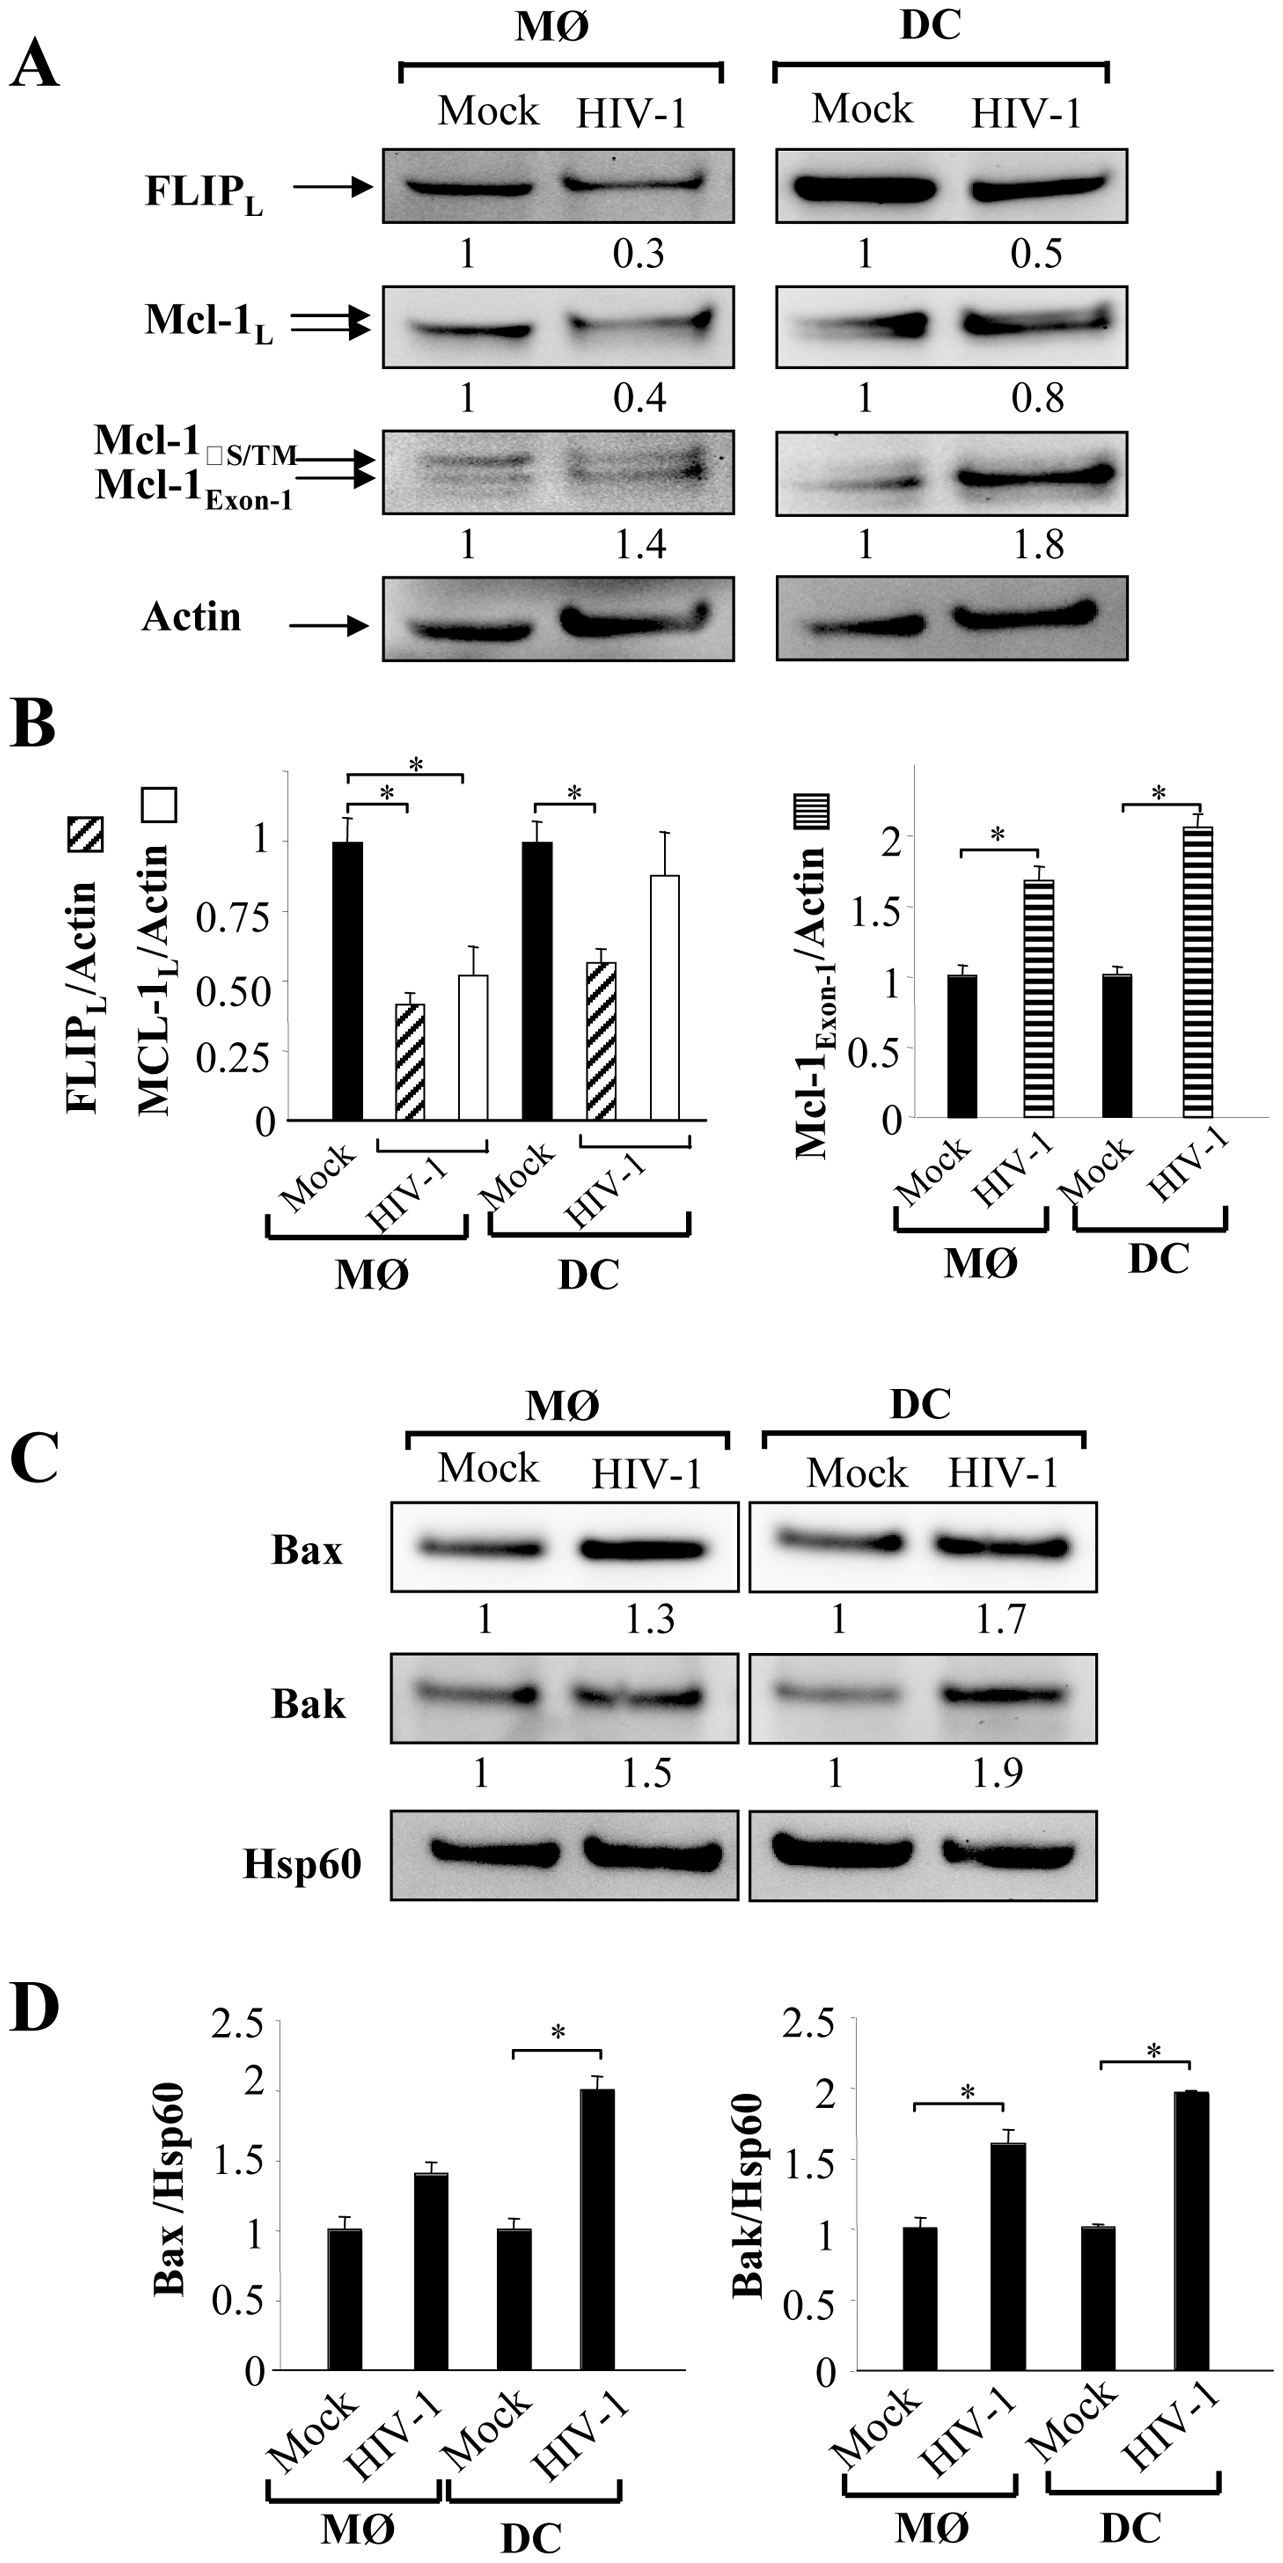 Expression of pro- and anti-apoptotic molecules in HIV-1 infected monocyte-derived macrophages and monocyte-derived DCs.